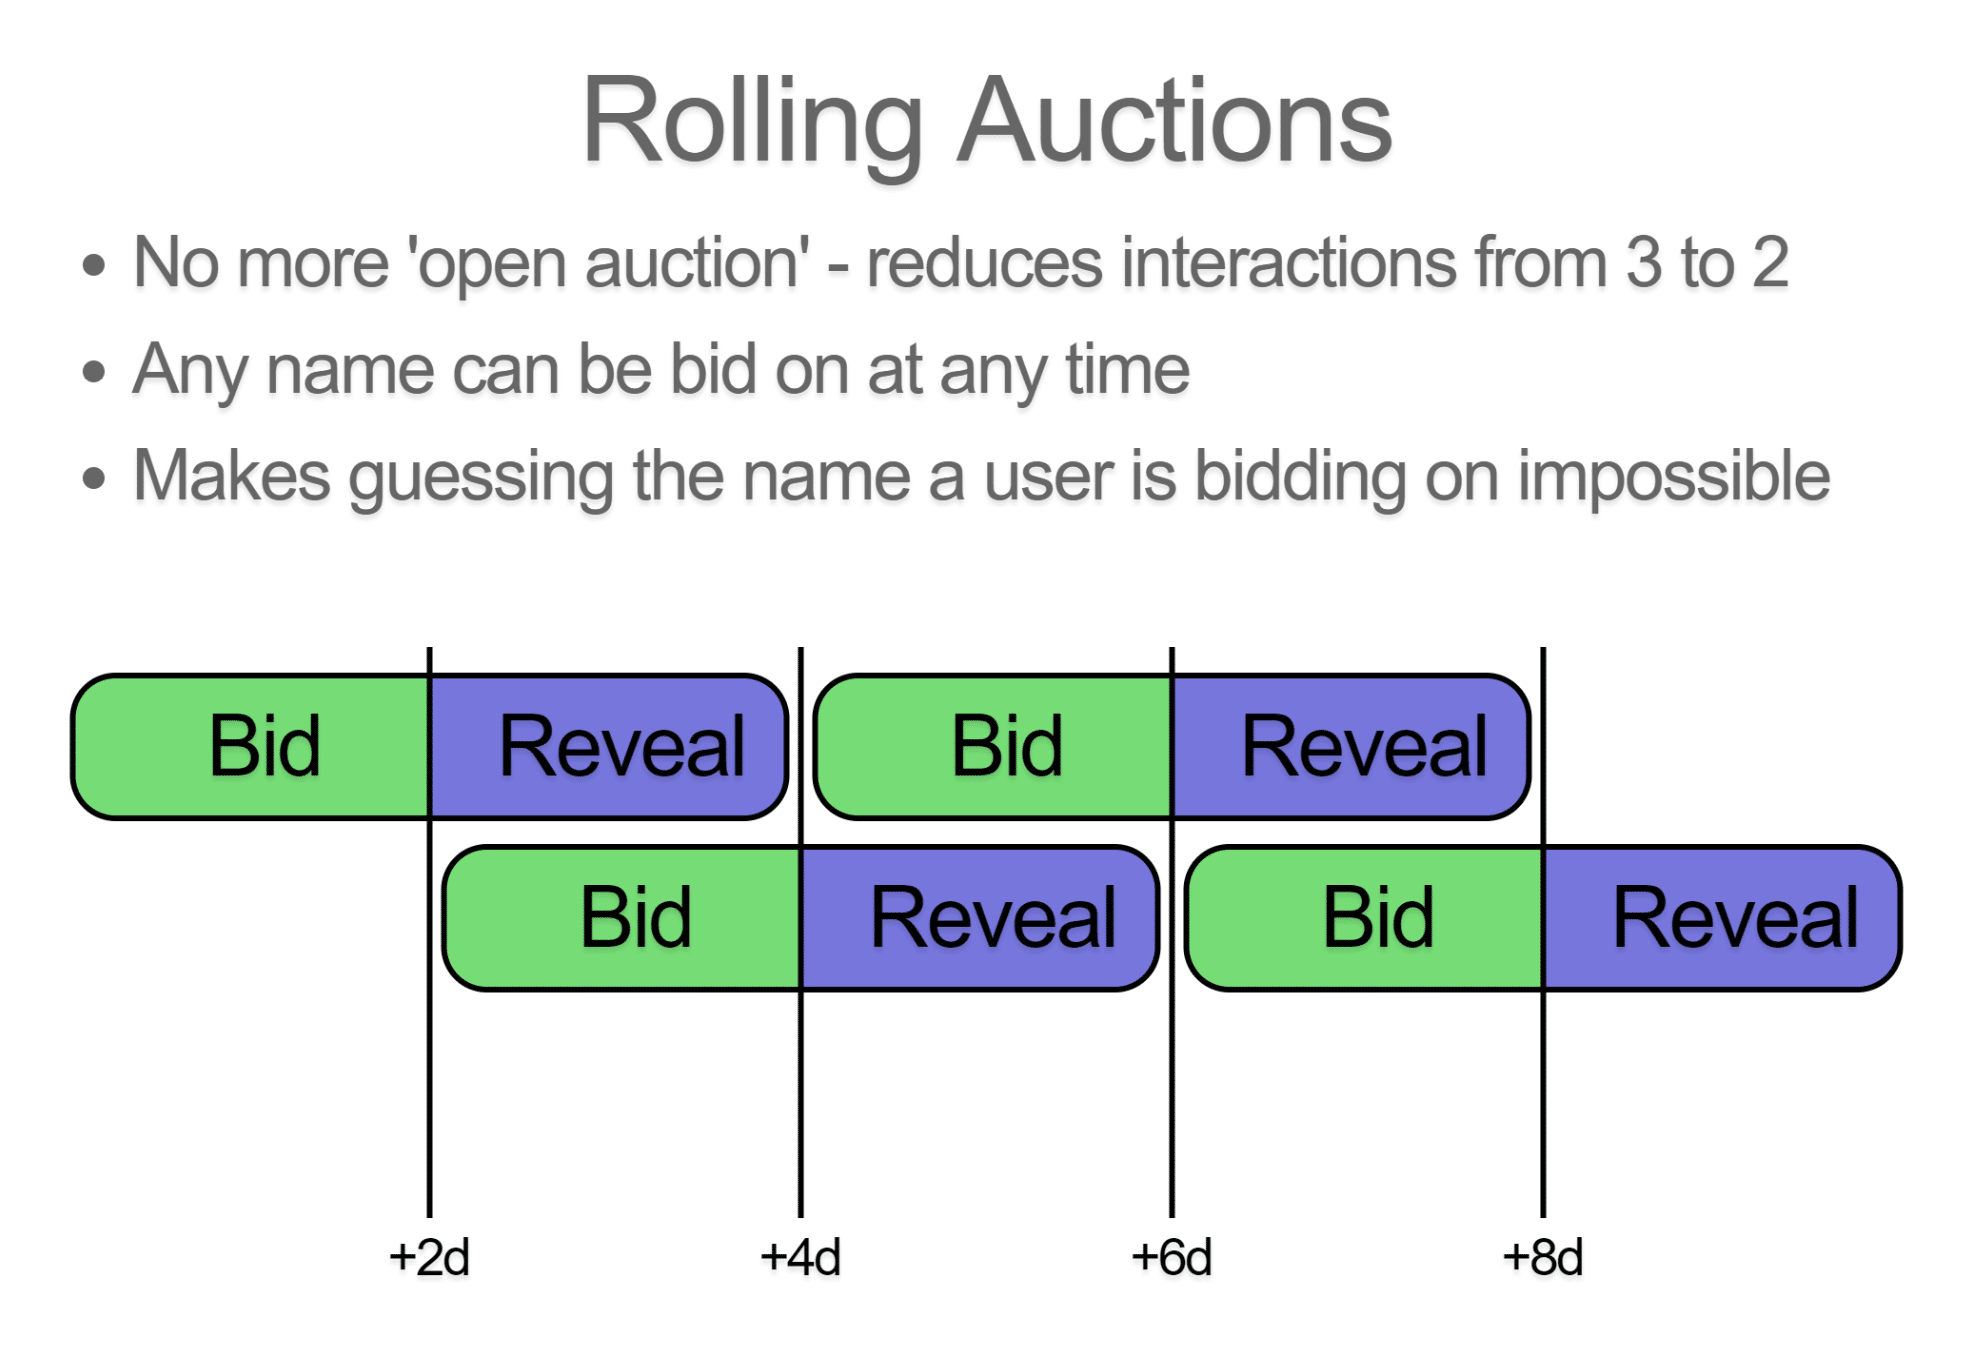 Rolling auctions